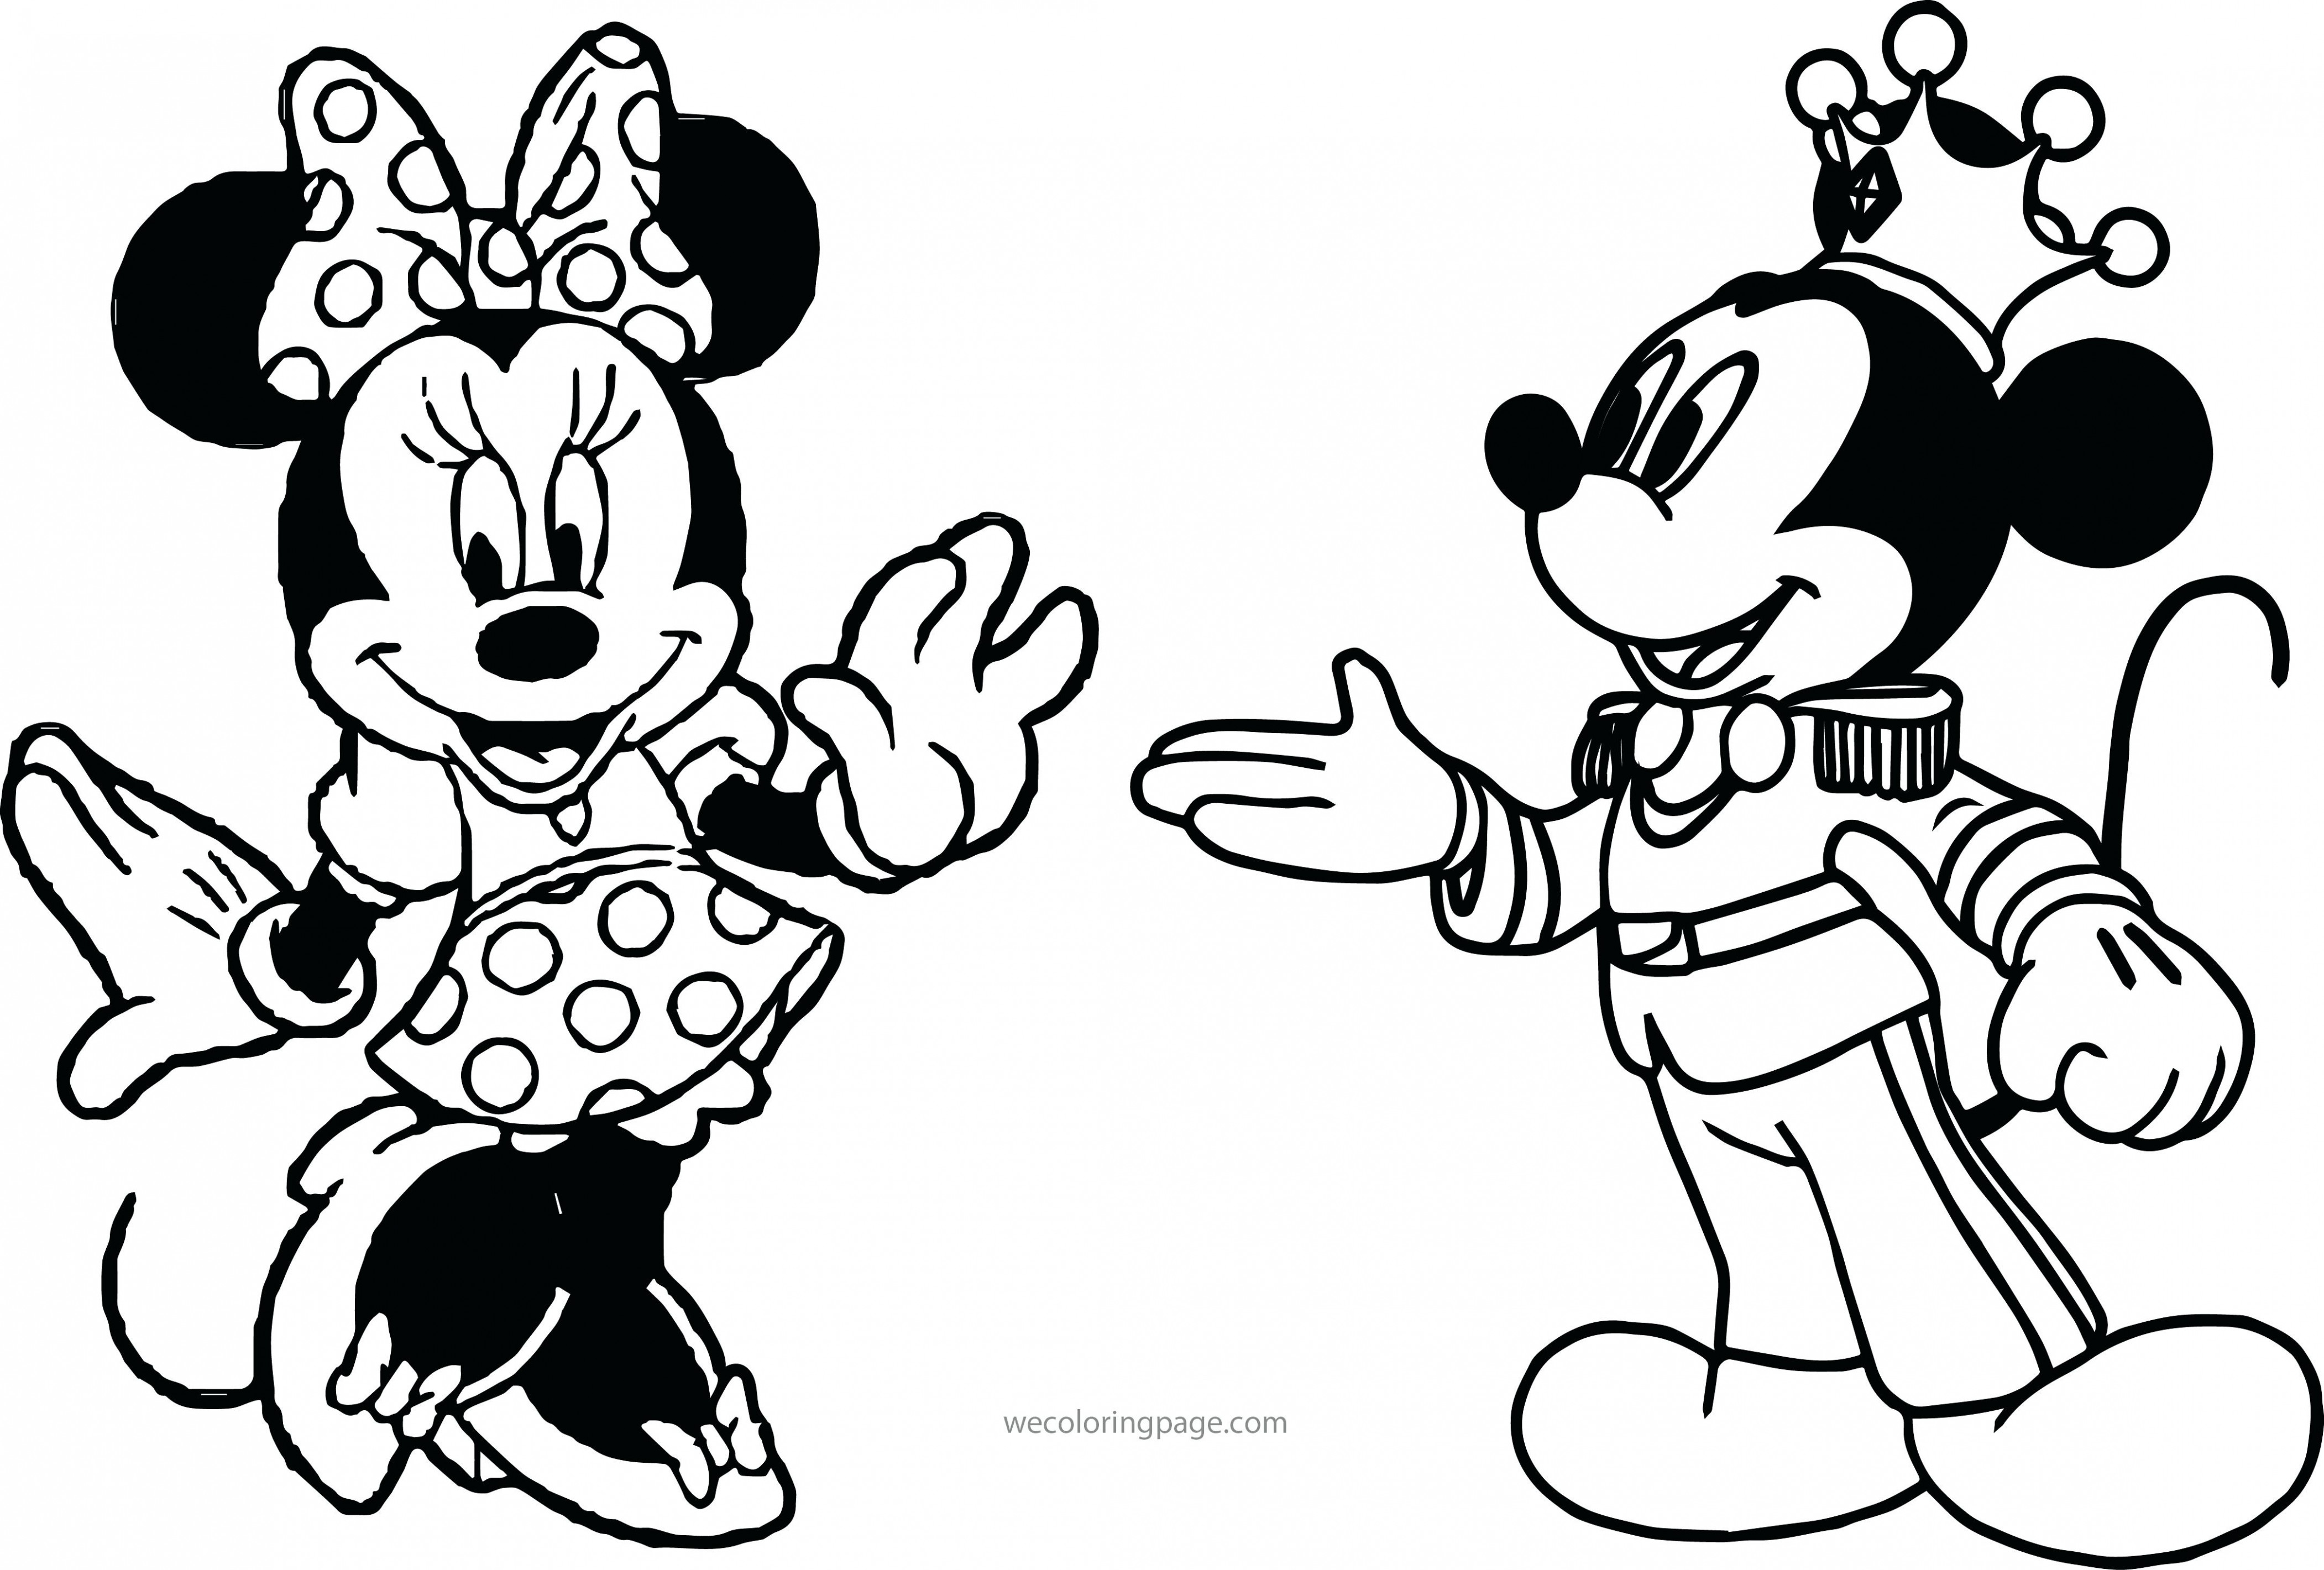 Coloring Ideas : Mickey Mouse Christmas Coloring Pages Free Print ..